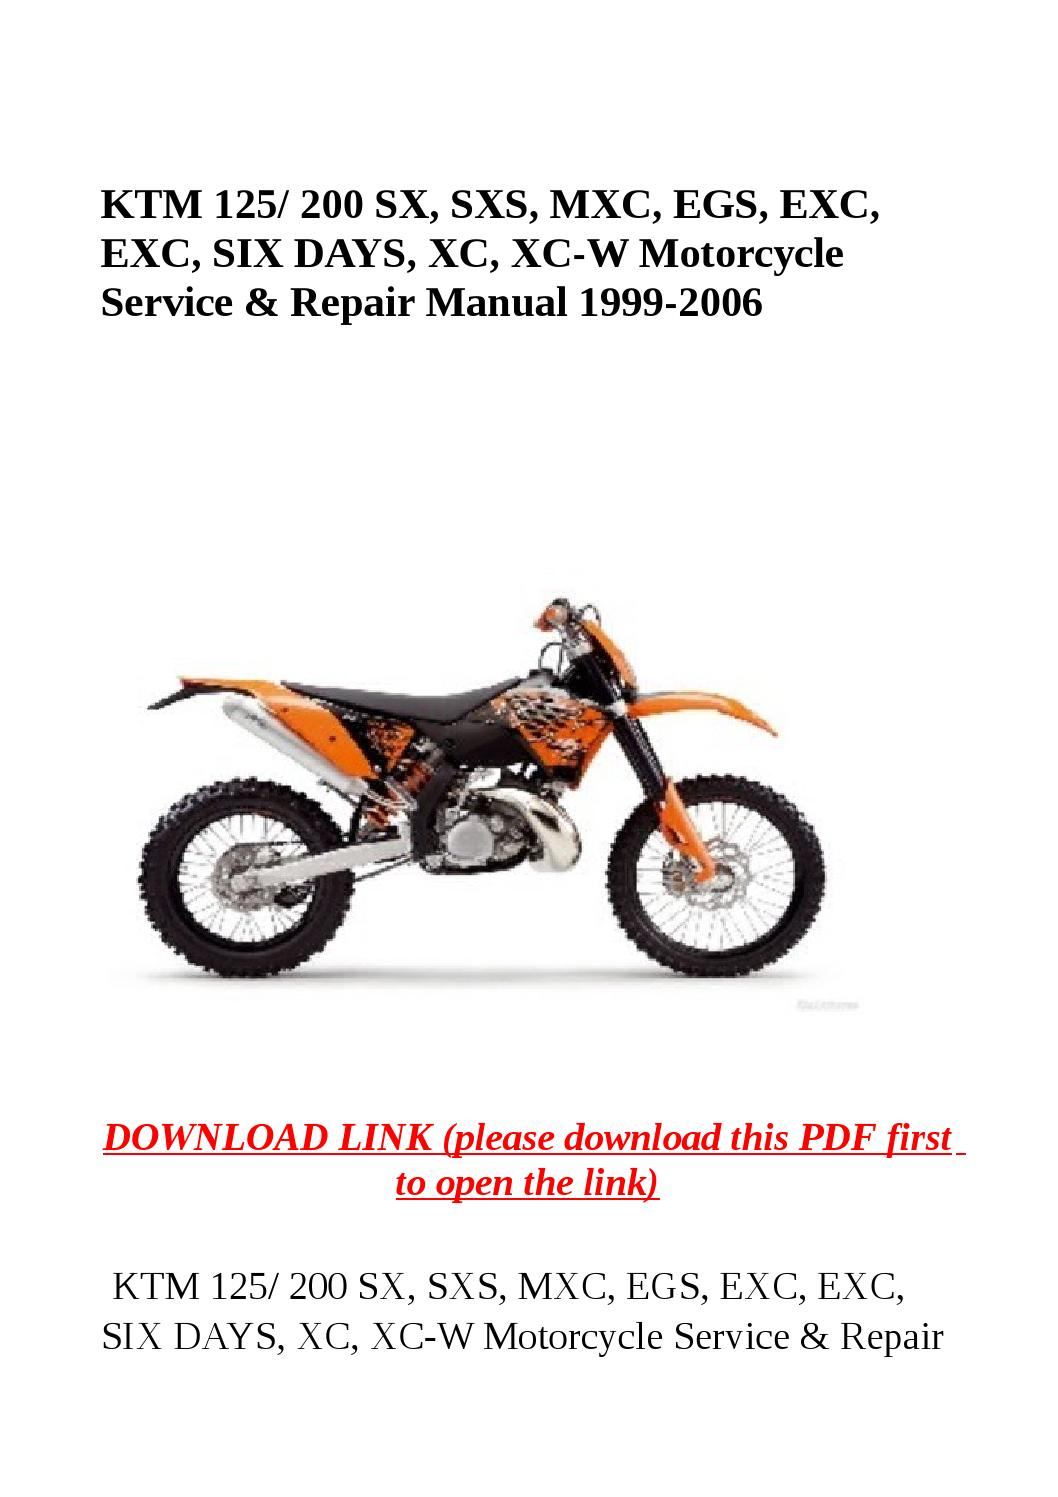 Ktm 125 200 sx, sxs, mxc, egs, exc, exc, six days, xc, xc w motorcycle  service & repair manual 1999 by yghj - issuu